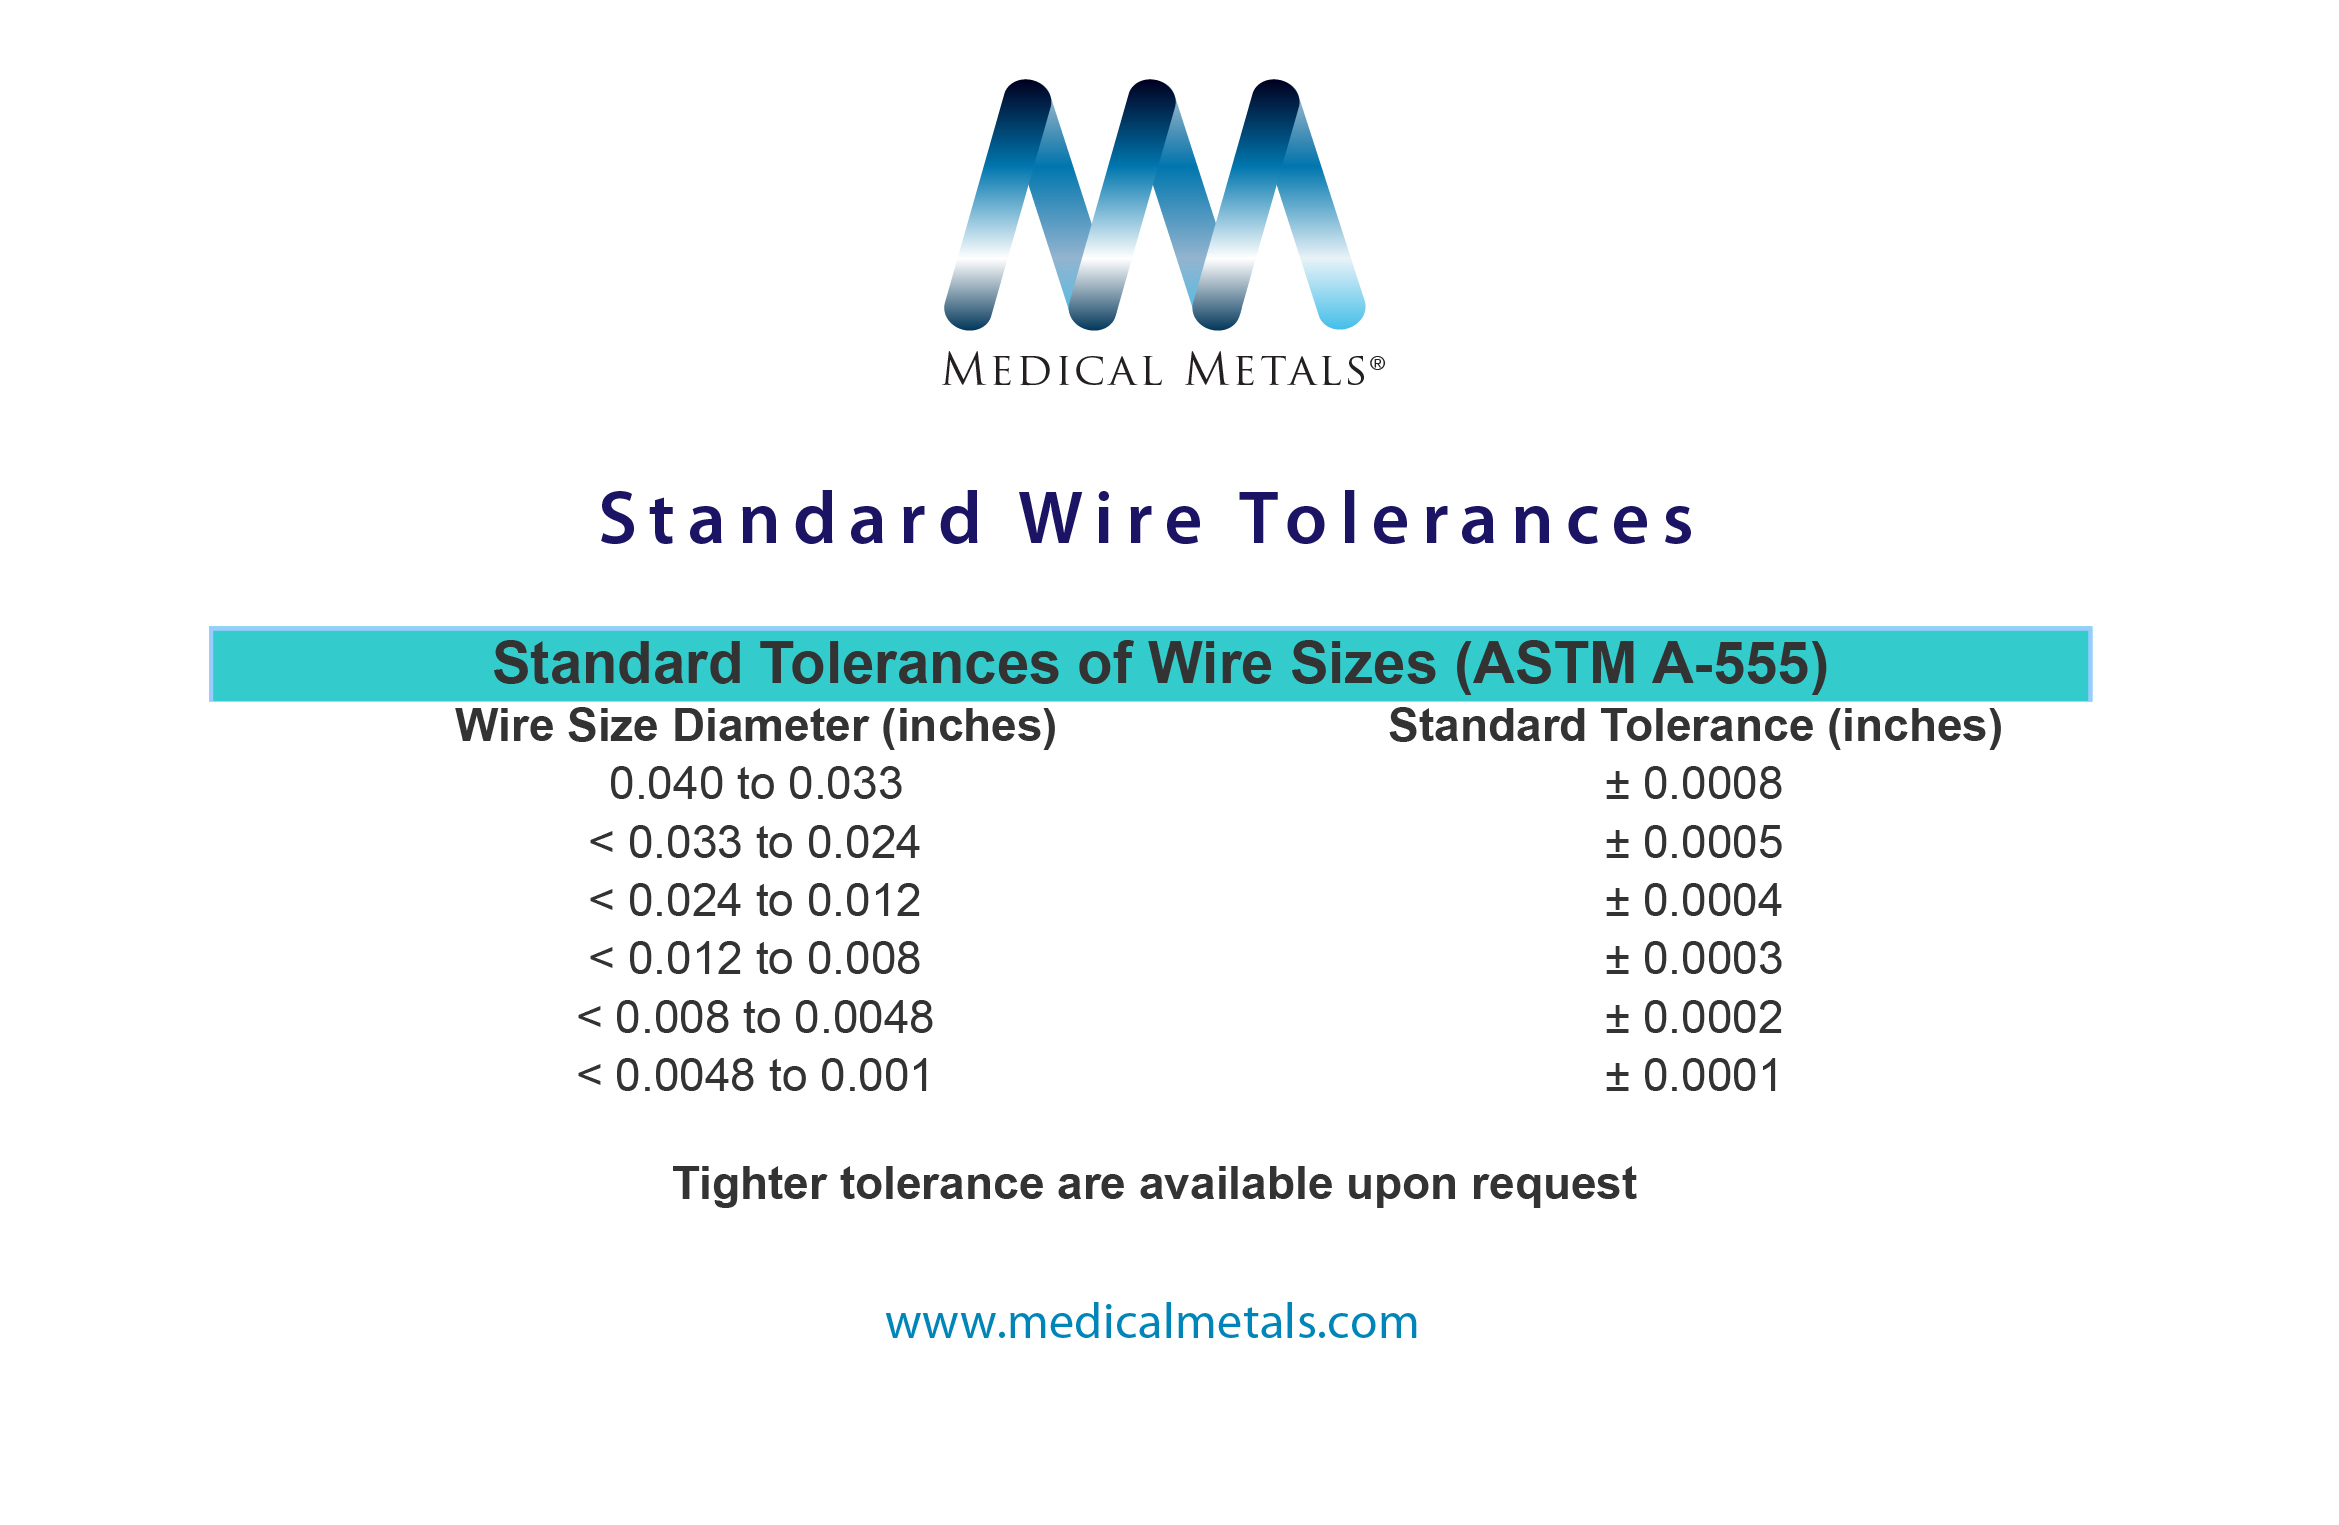 Standard Wire Tolerances - MedicalMetalsNew